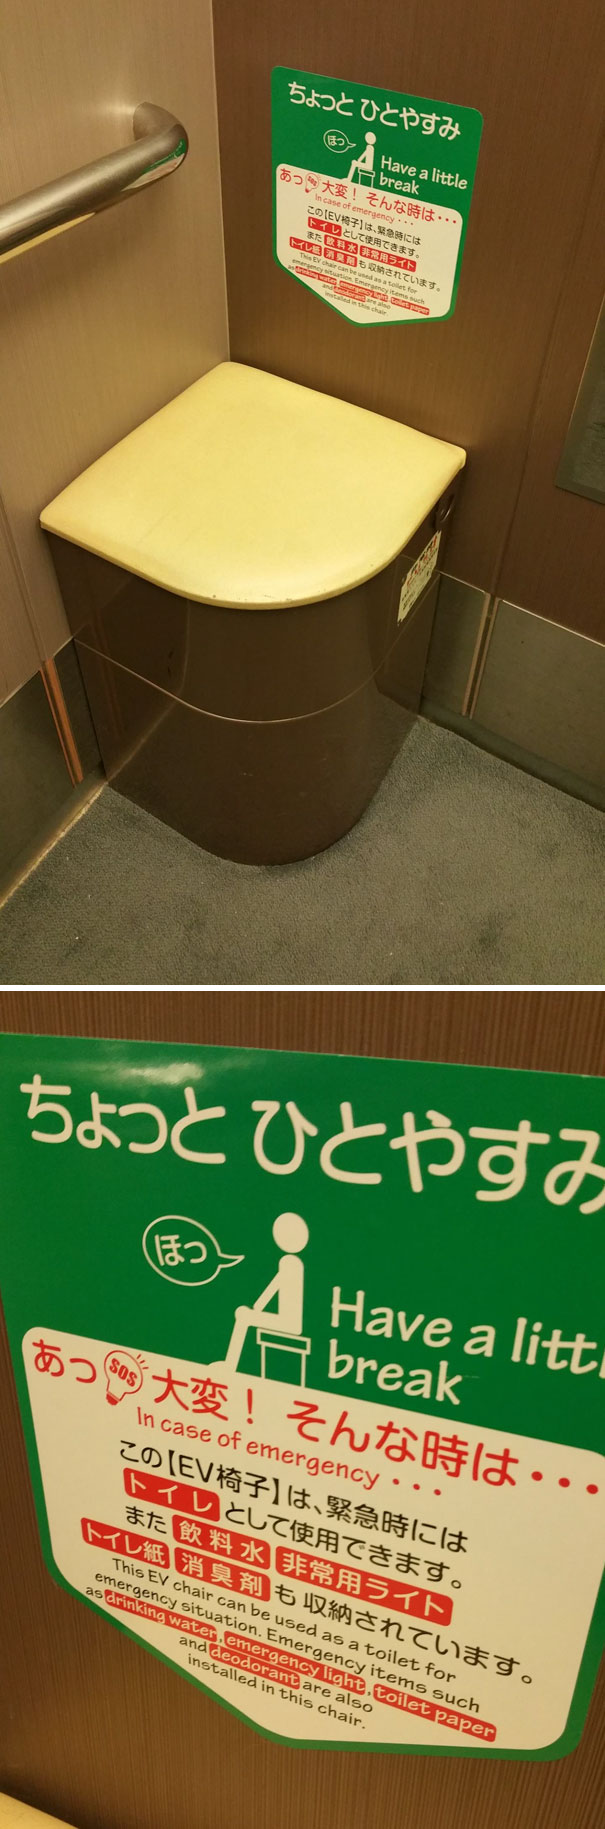 This Lift                                                          In Japan Has A                                                          Seat That Can                                                          Be Used As A                                                          Toilet In An                                                          Emergency